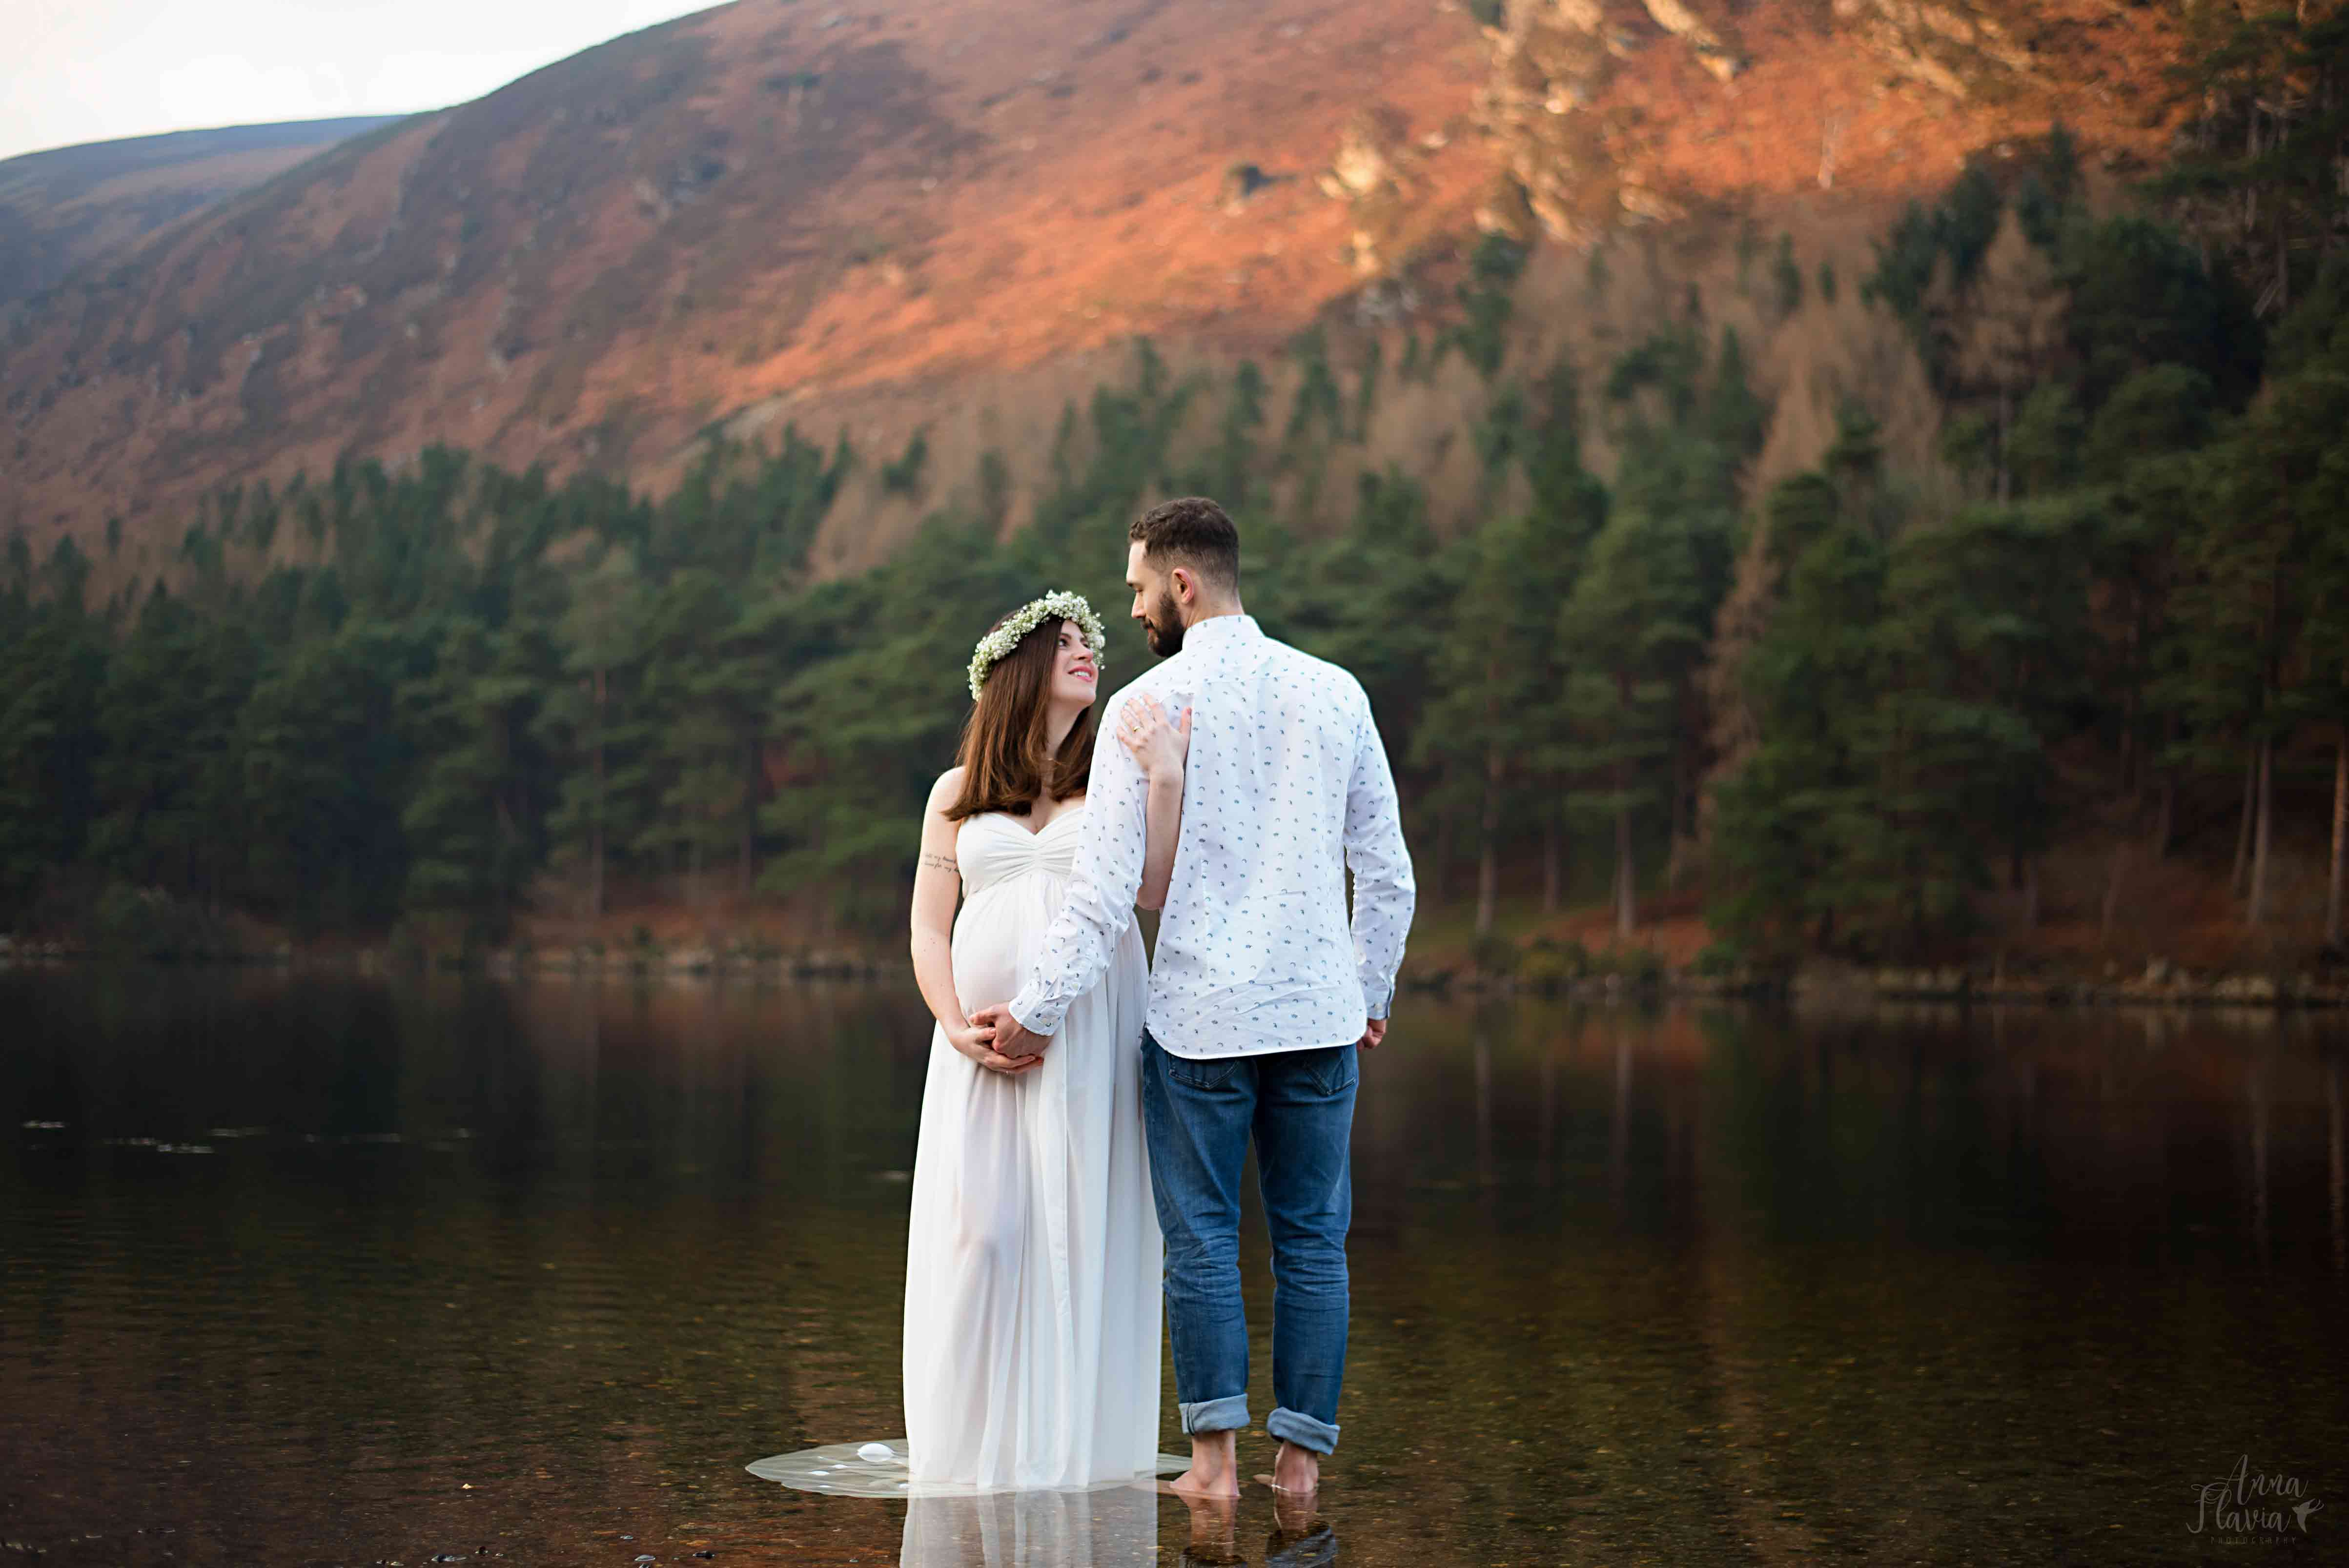 Maternity Photography Session Dublin